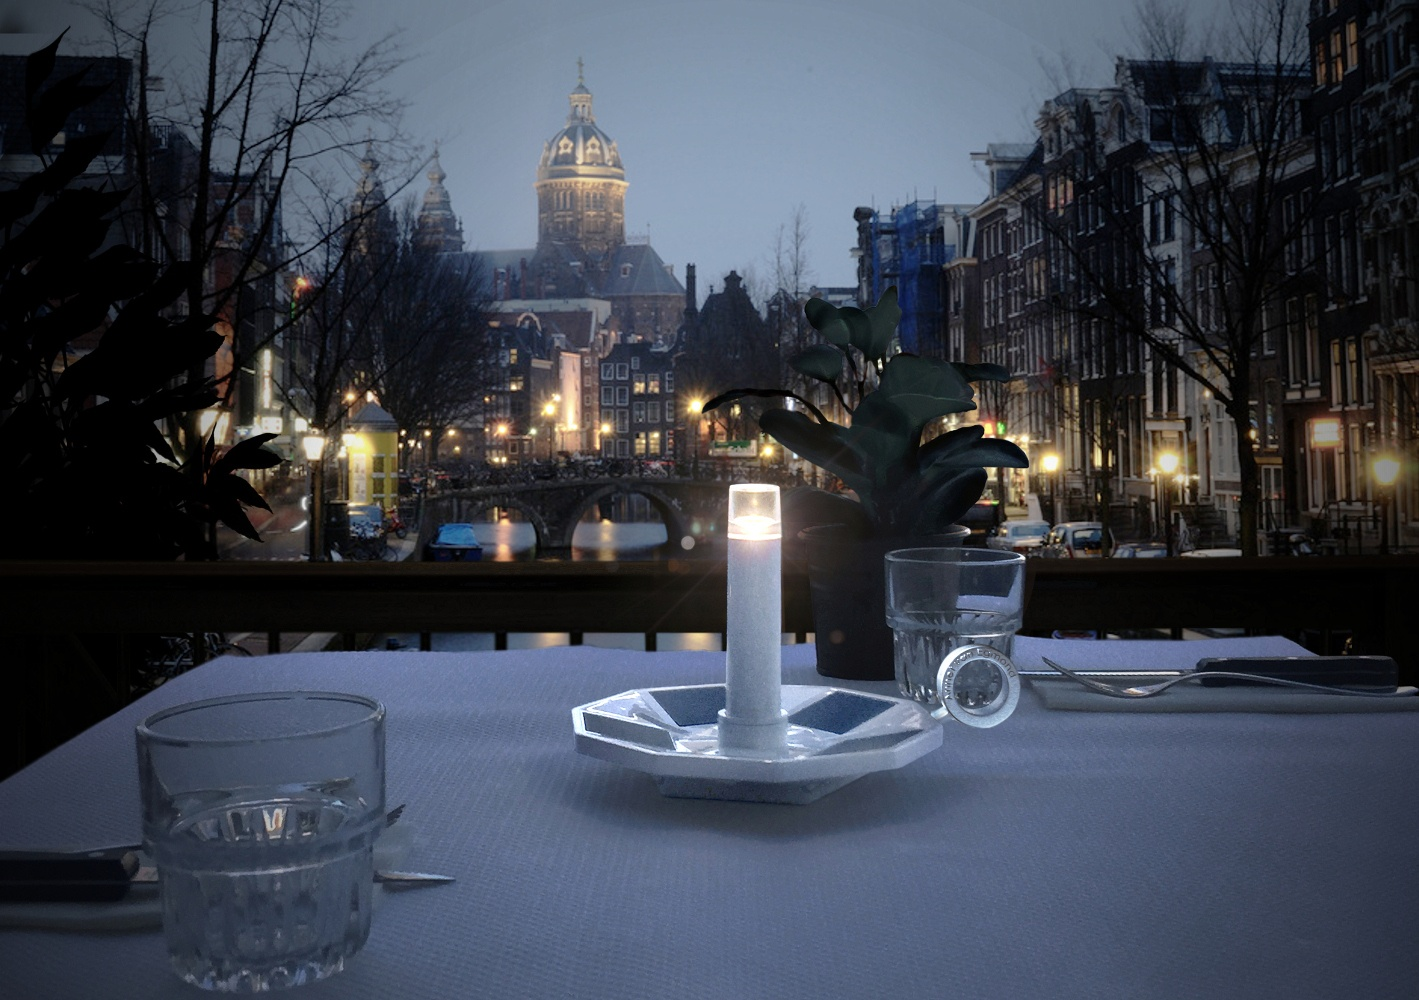 Miss Solar Light by Annet van Egmond